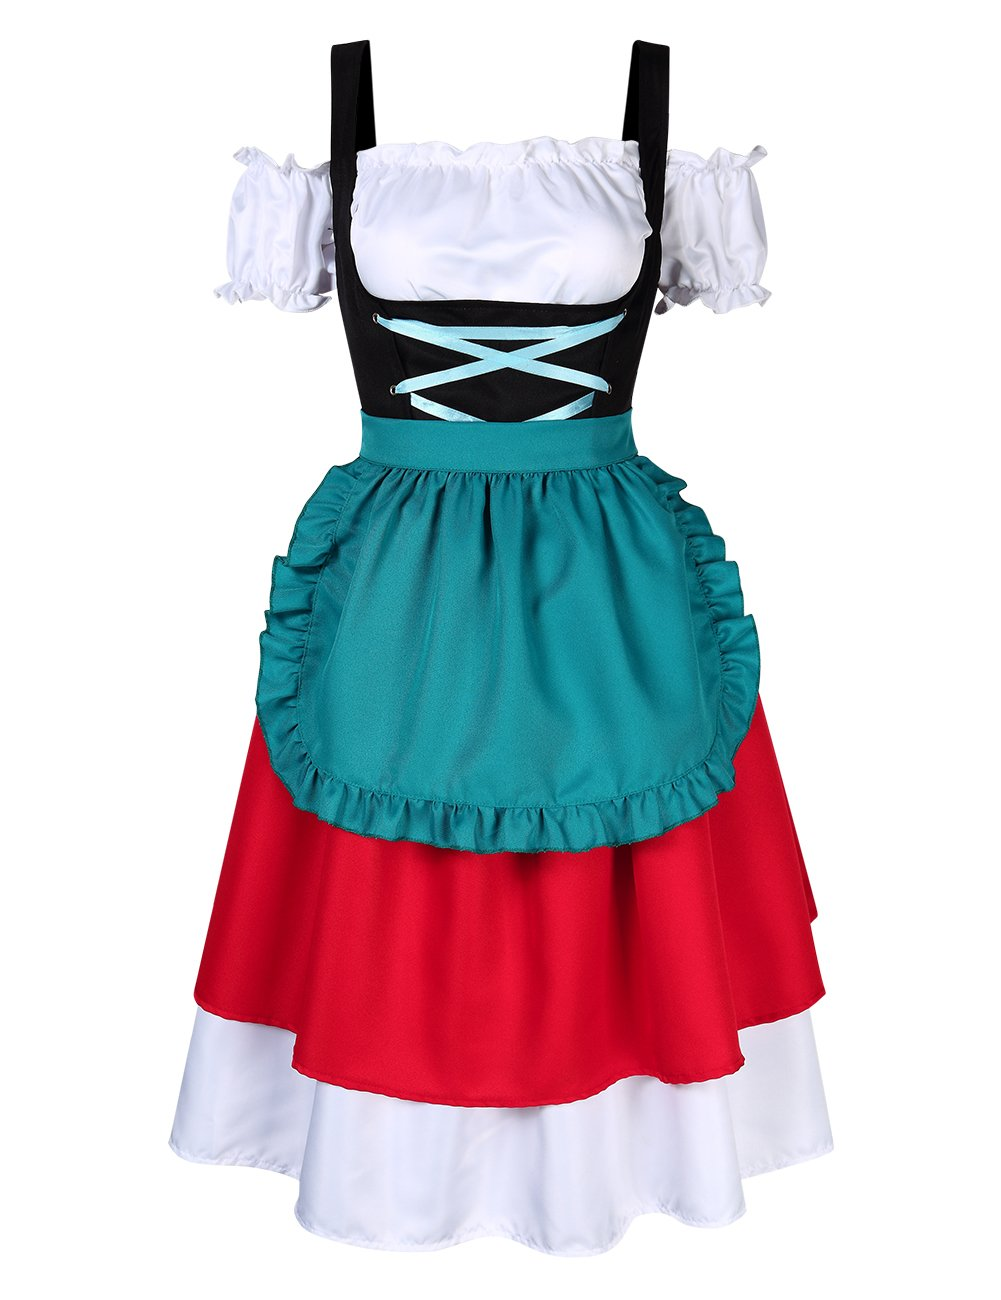 GloryStar Women's 3 Pcs German Dirndl Serving Wench Bavarian Oktoberfest Adult Costumes (S, Red/Green) by GloryStar (Image #1)